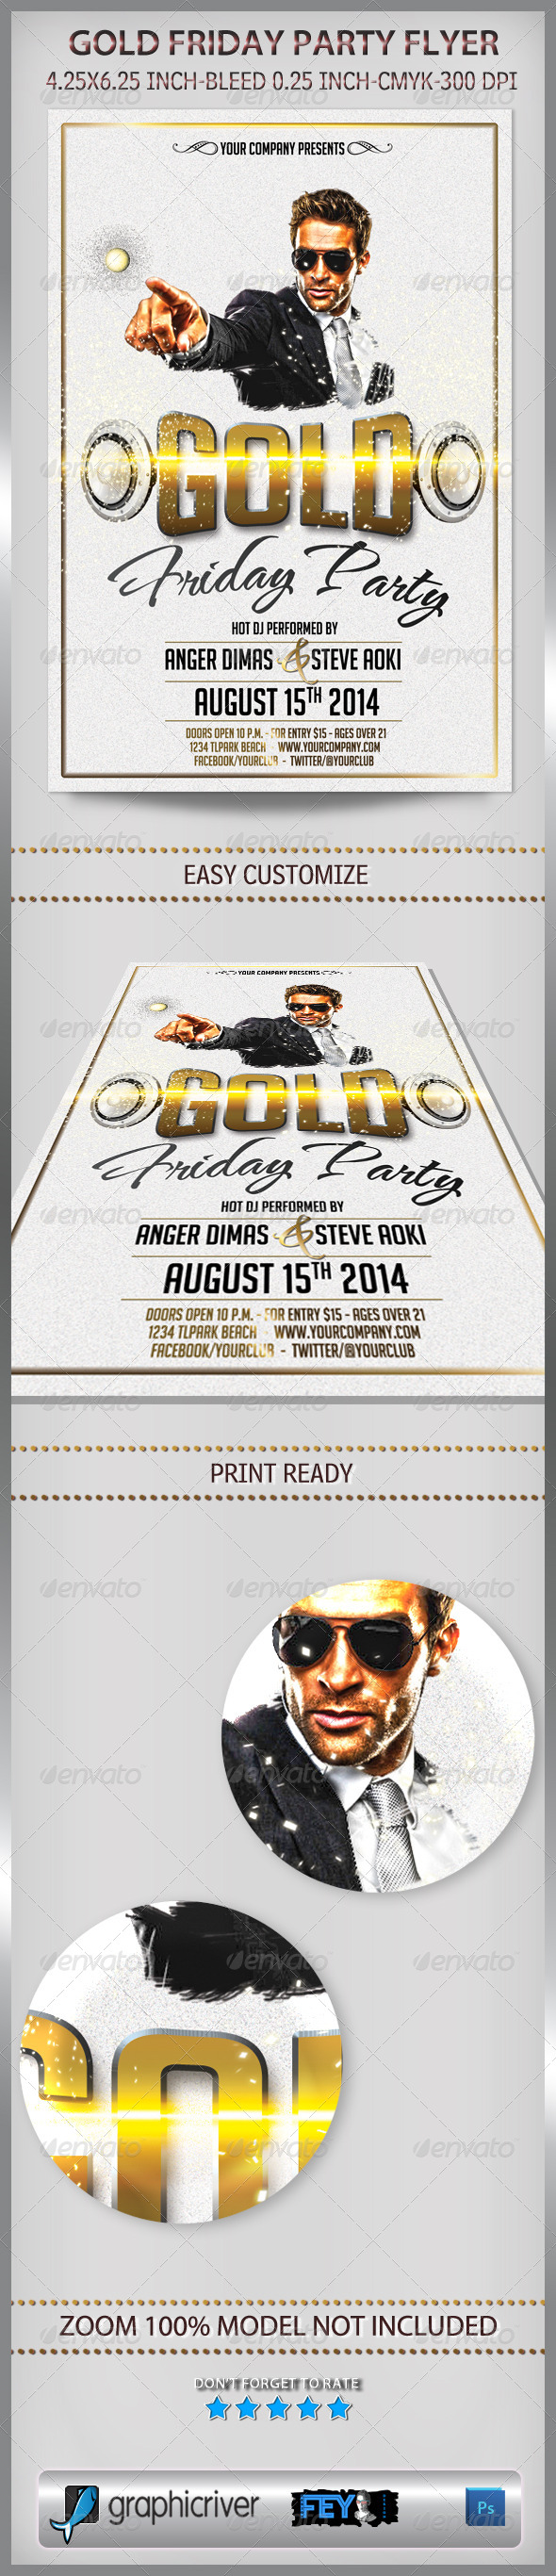 GraphicRiver Gold Friday Party Flyer 6913499